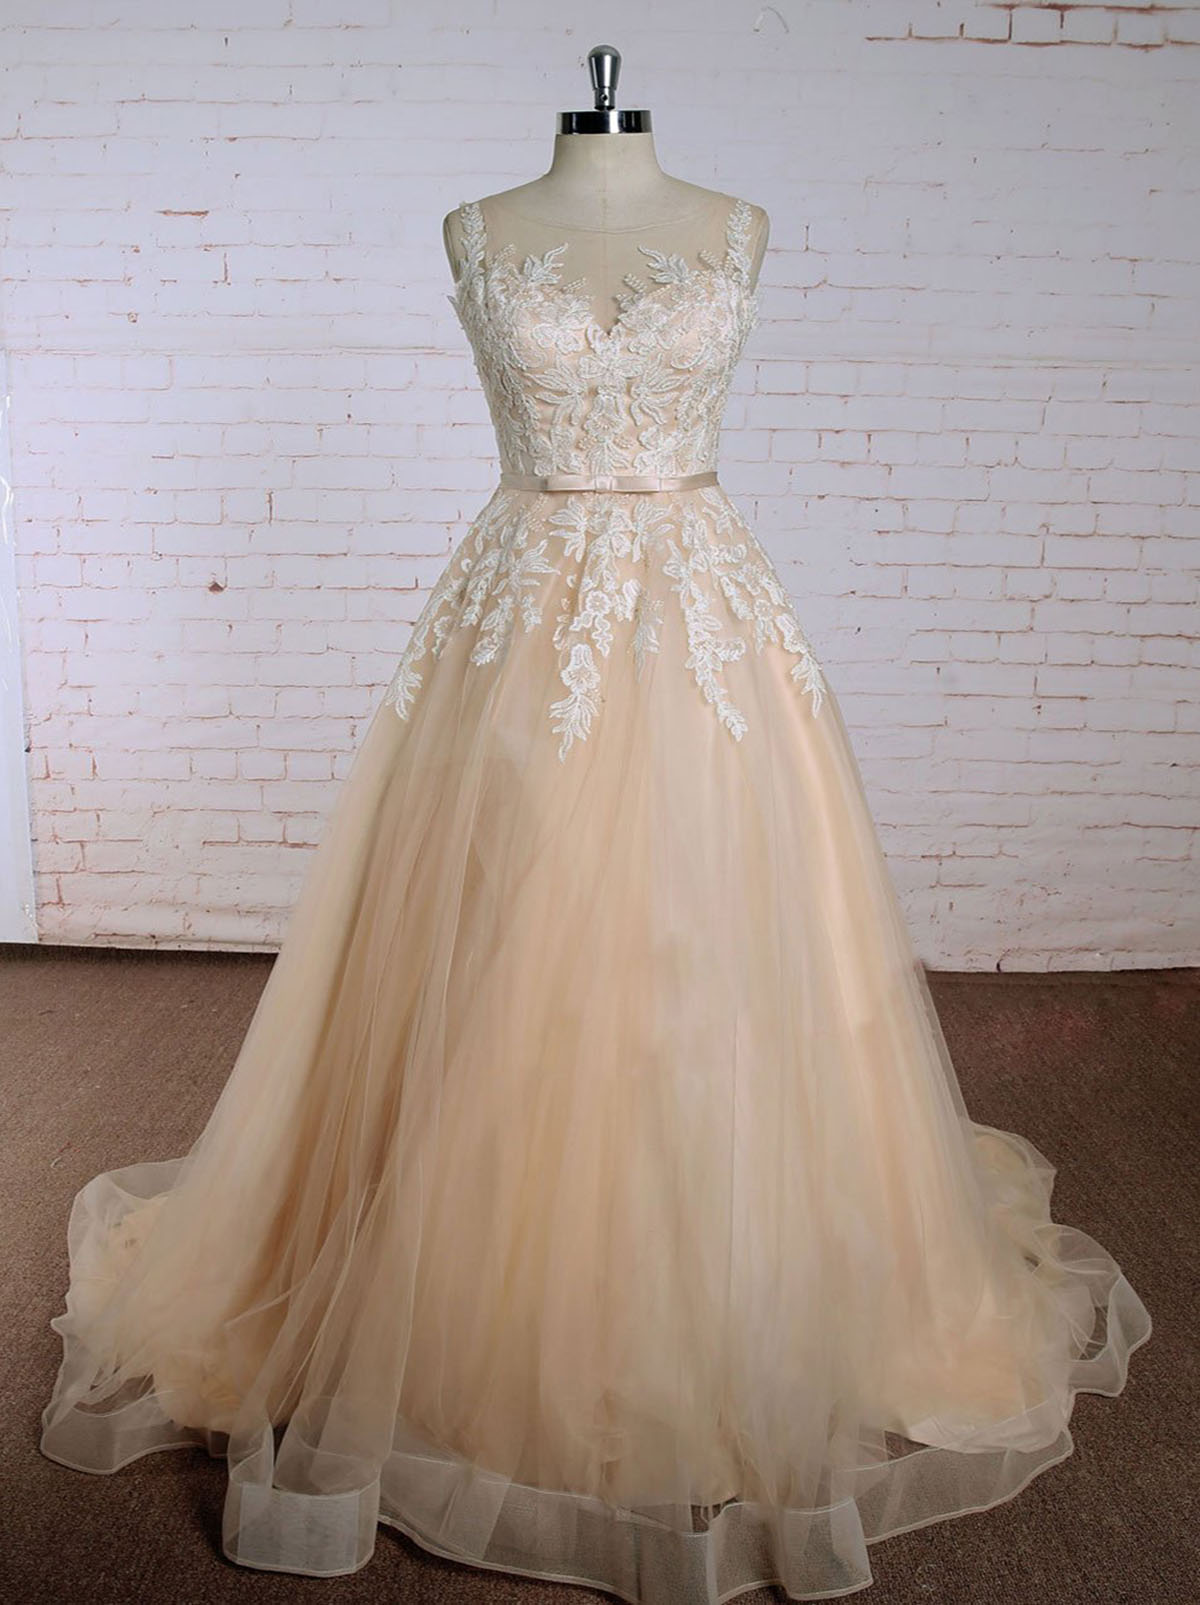 Champagne tulle long sweet 16 prom dress, long lace appliqués plus size  graduation dress from Sweetheart Dress